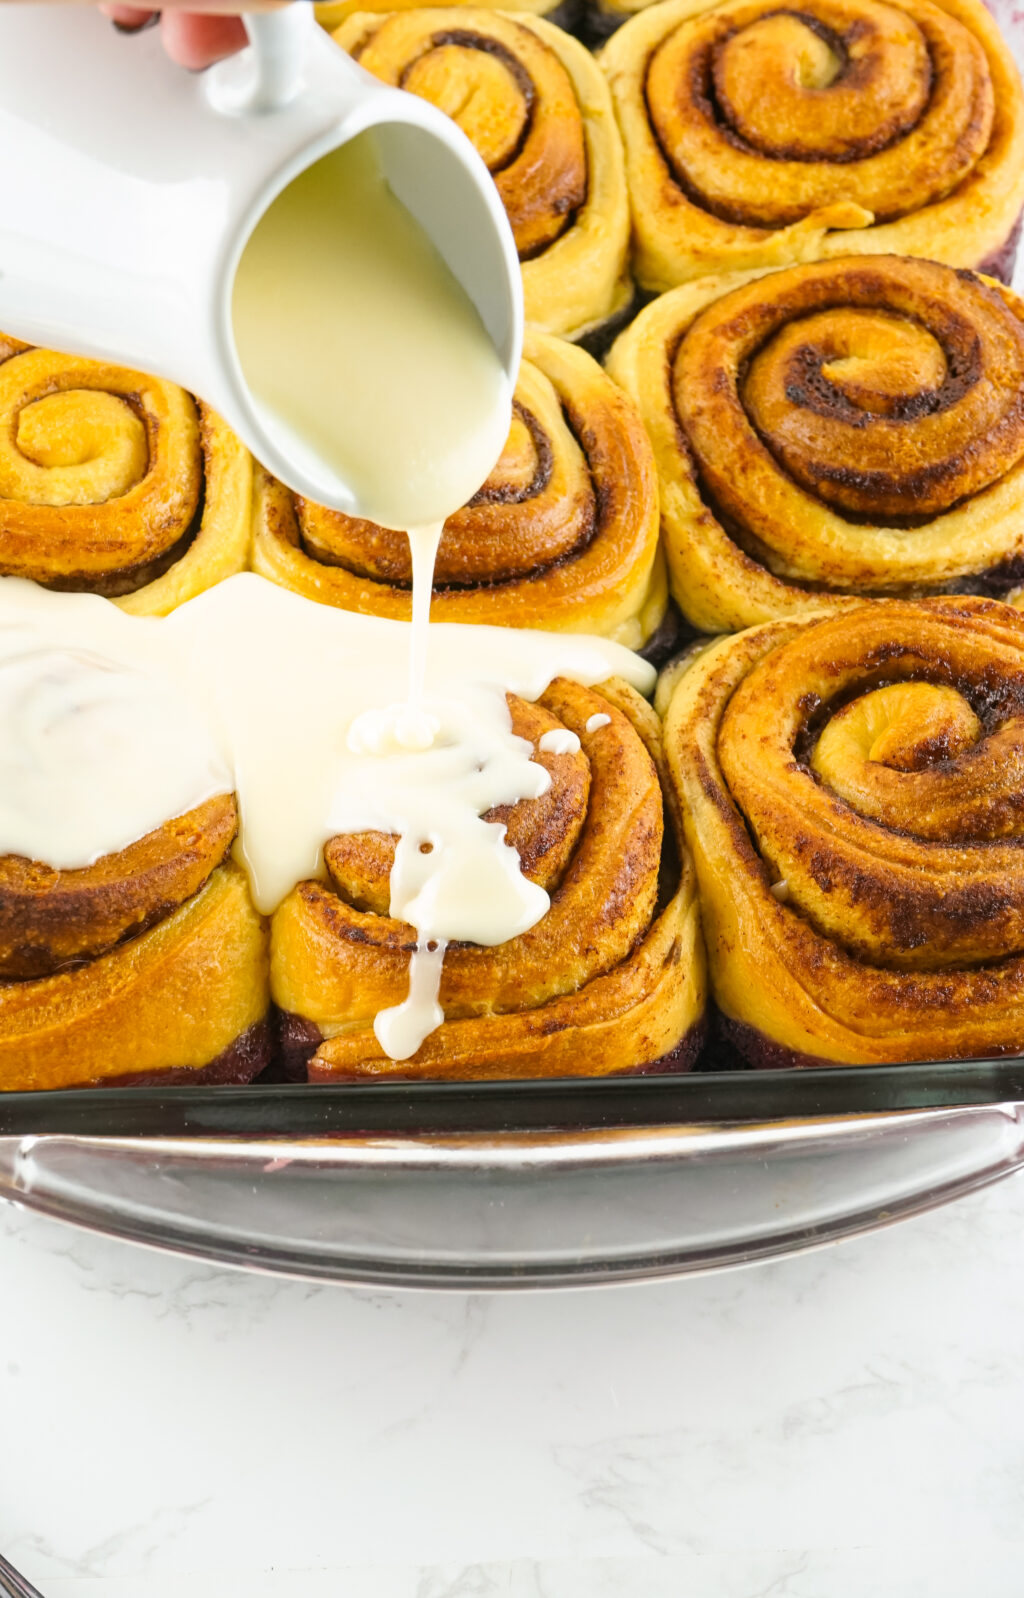 cinnamon roll frosting being poured on top of the cinnamon roll cobbler